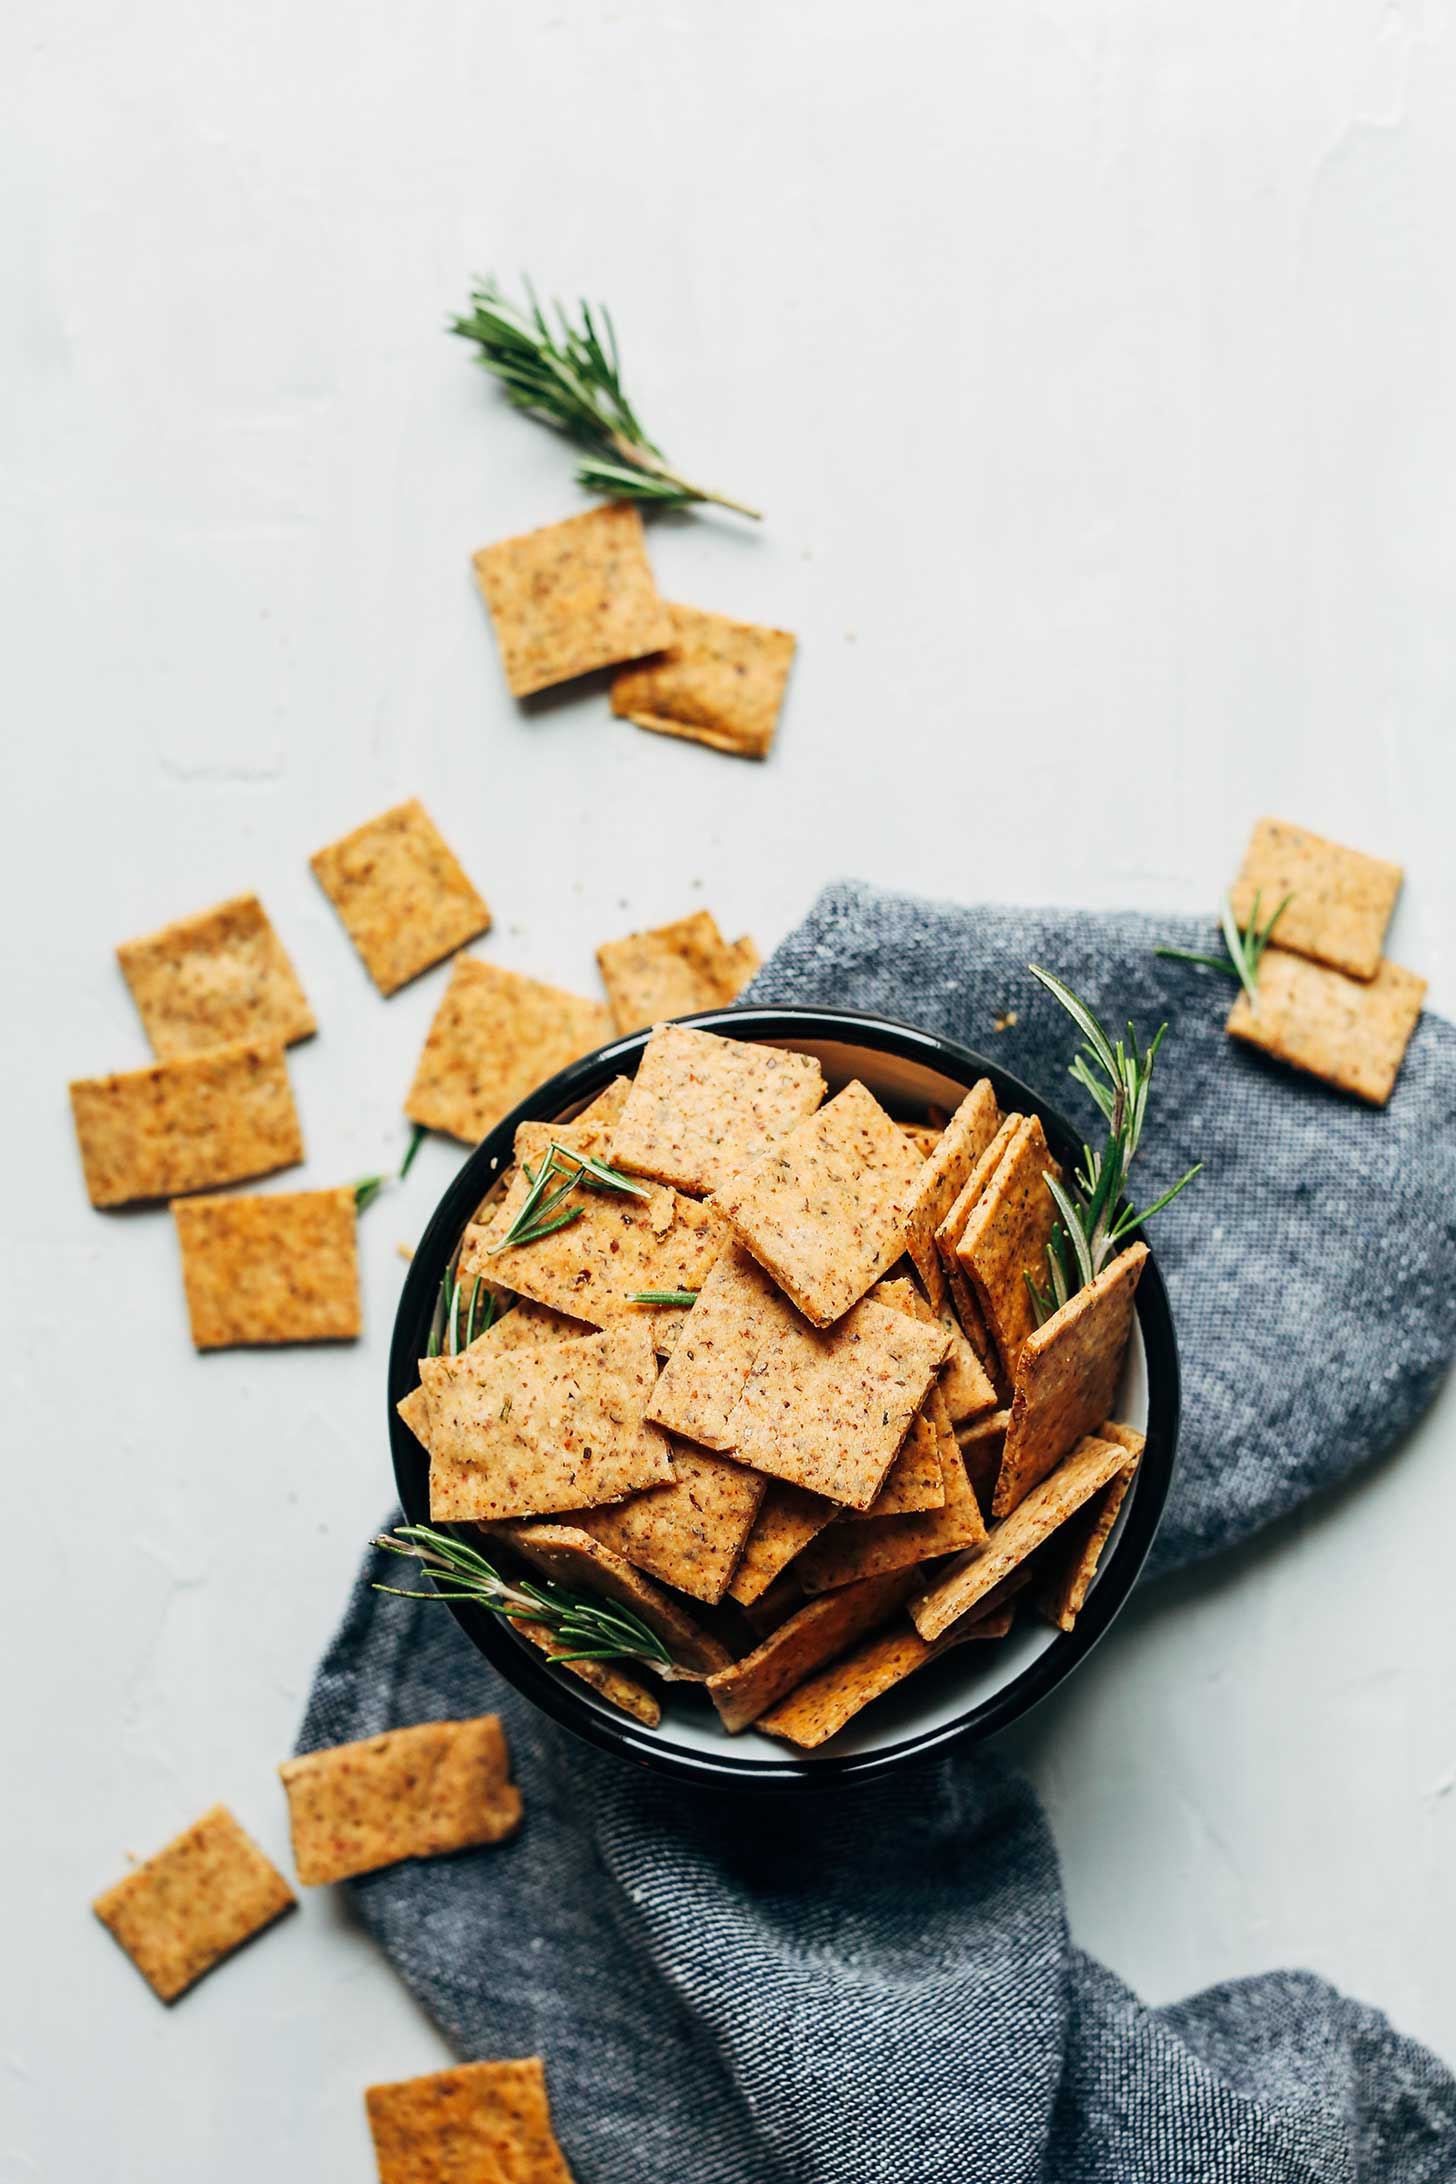 Bowl of crispy and delicious Vegan Gluten-Free Crackers with sprigs of rosemary